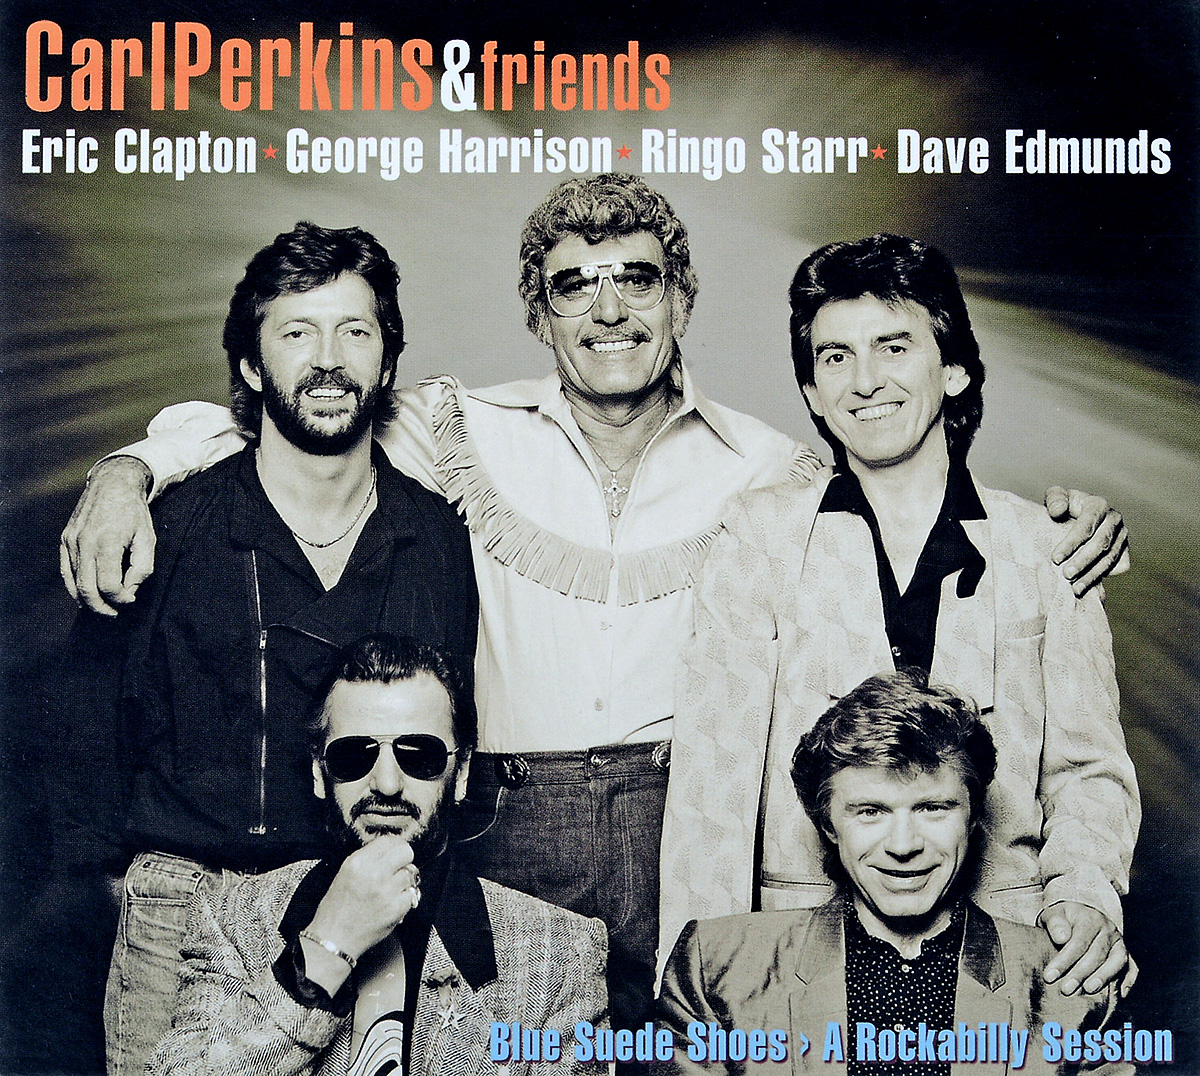 Carl Perkins & Friends: Blue Suede Shoes: A Rockabilly Session: 30th Anniversary Edition (CD + DVD) платье dorothy perkins dorothy perkins do005ewzvf65